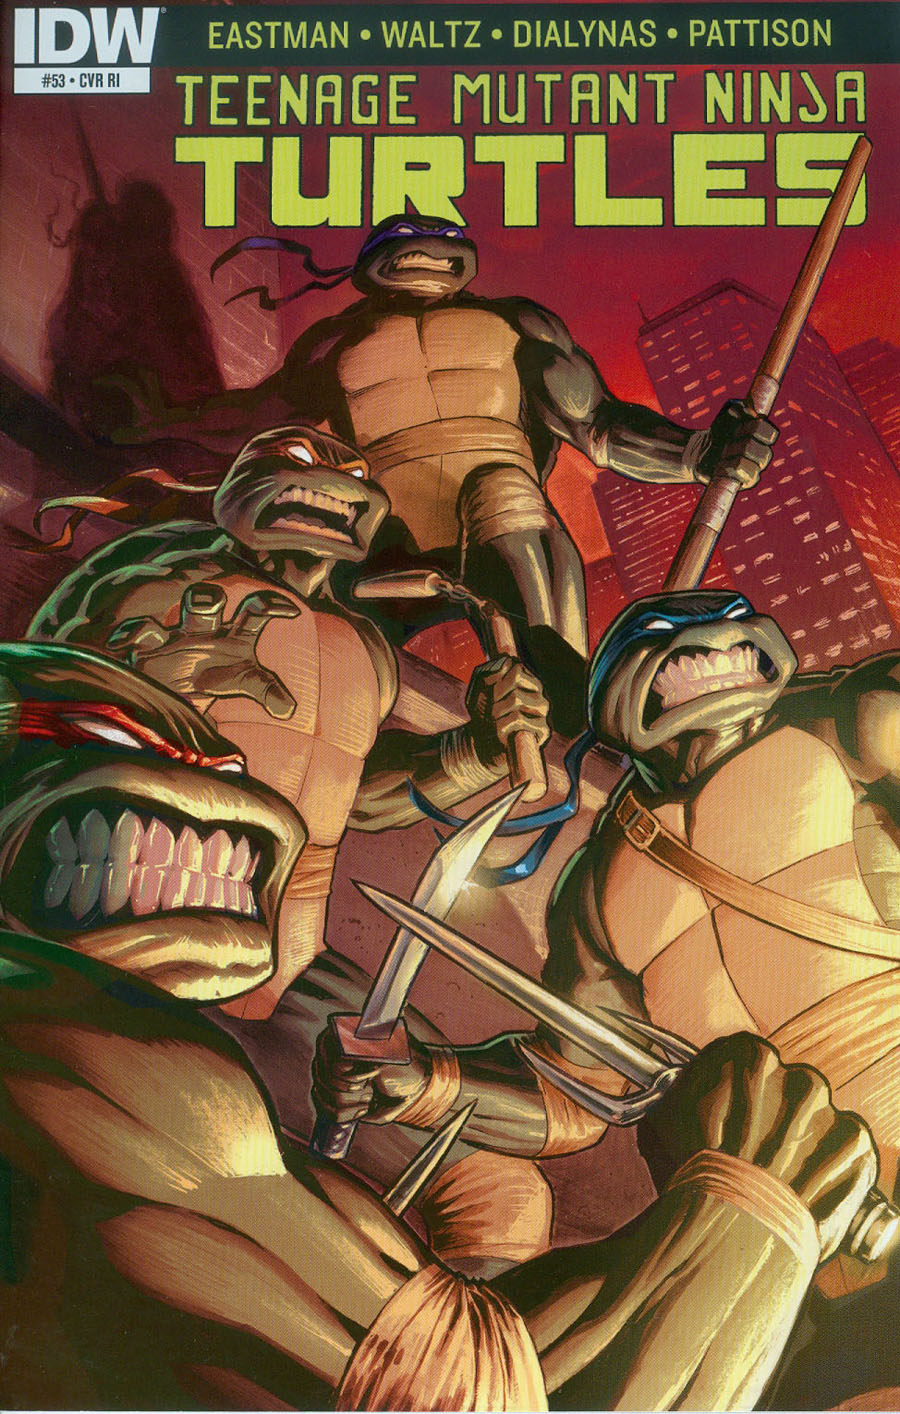 Teenage Mutant Ninja Turtles Vol 5 #53 Cover C Incentive Atilio Rojo Variant Cover